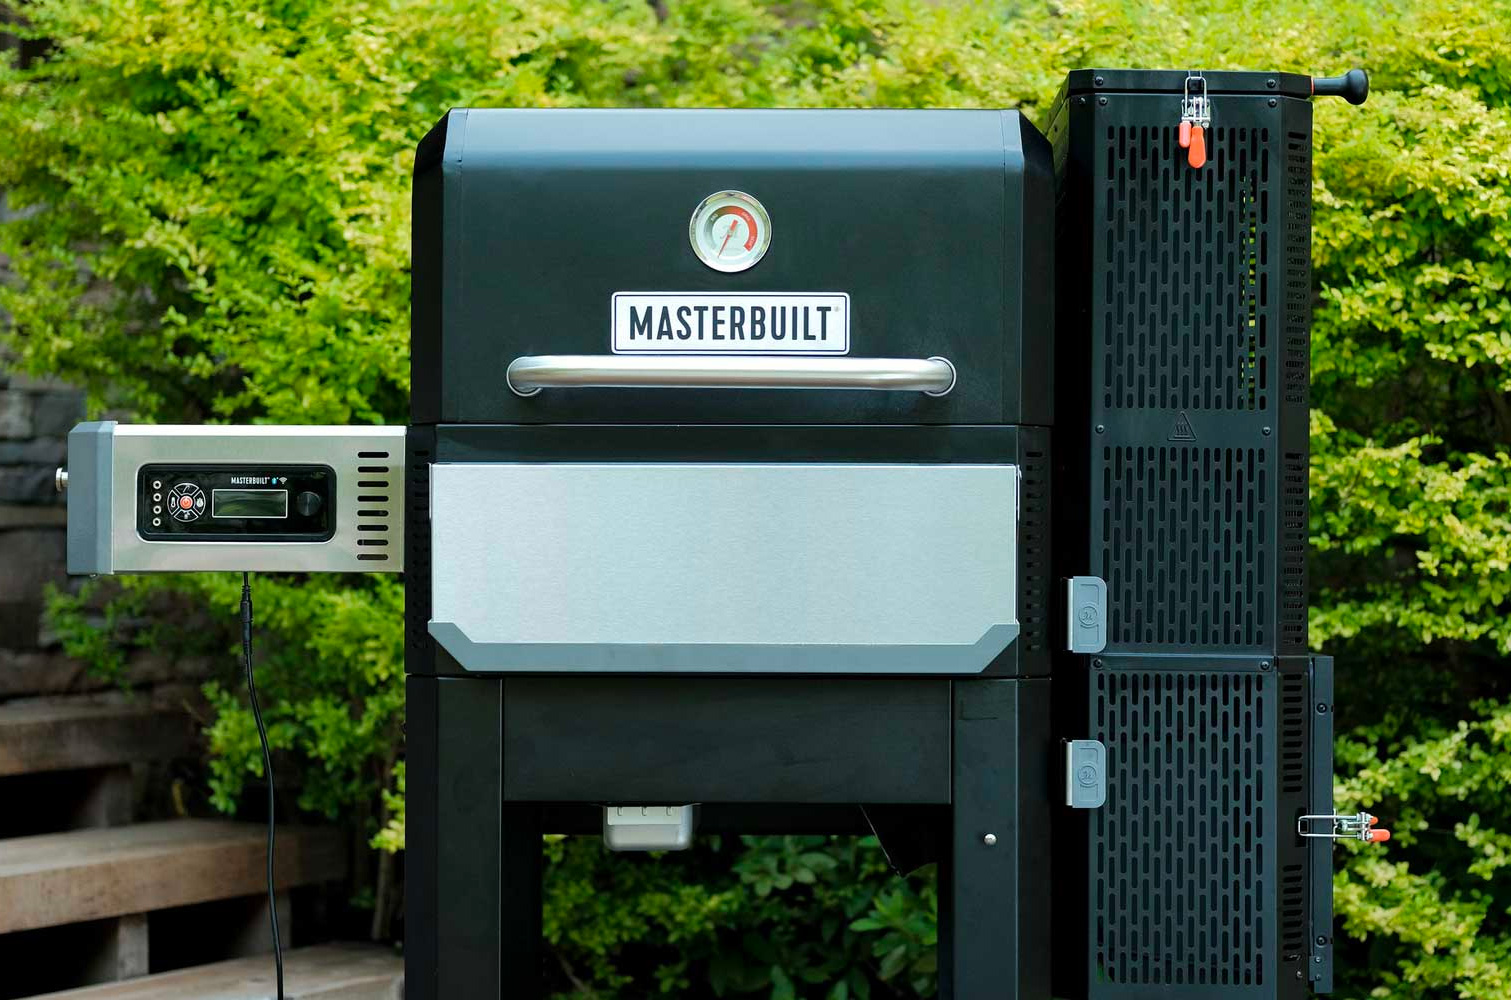 Grill & Griddle with Masterbuilt Gravity Series 800 at werd.com